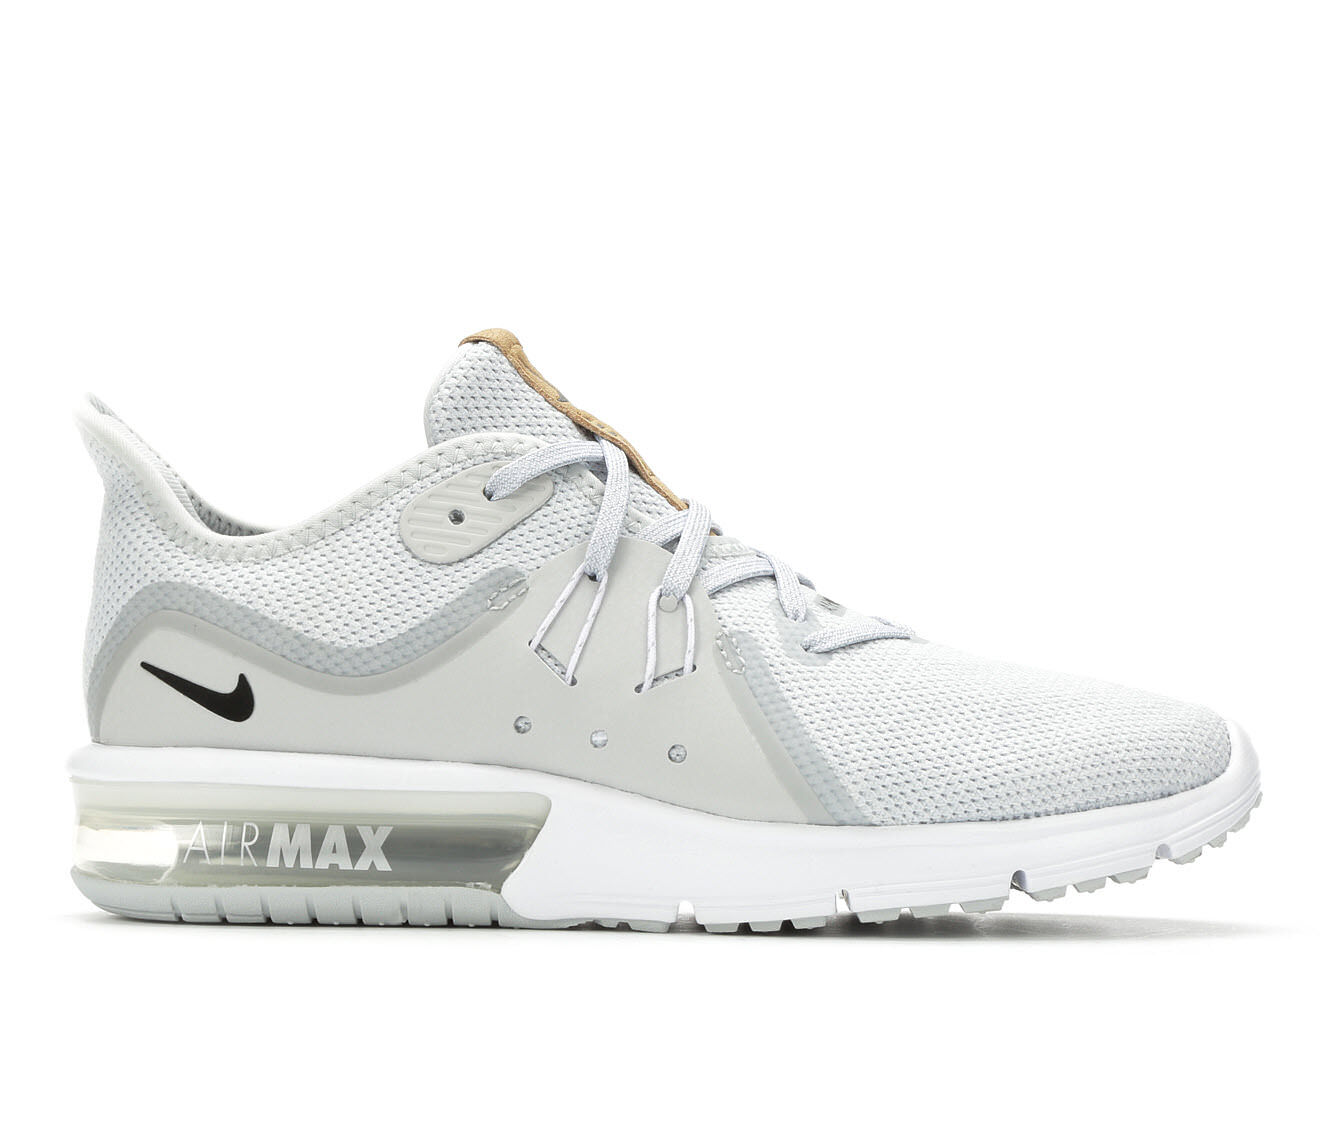 Max Shoes Carnival Running 3 Shoe Sequent Women's Nike Air xRwvFfC